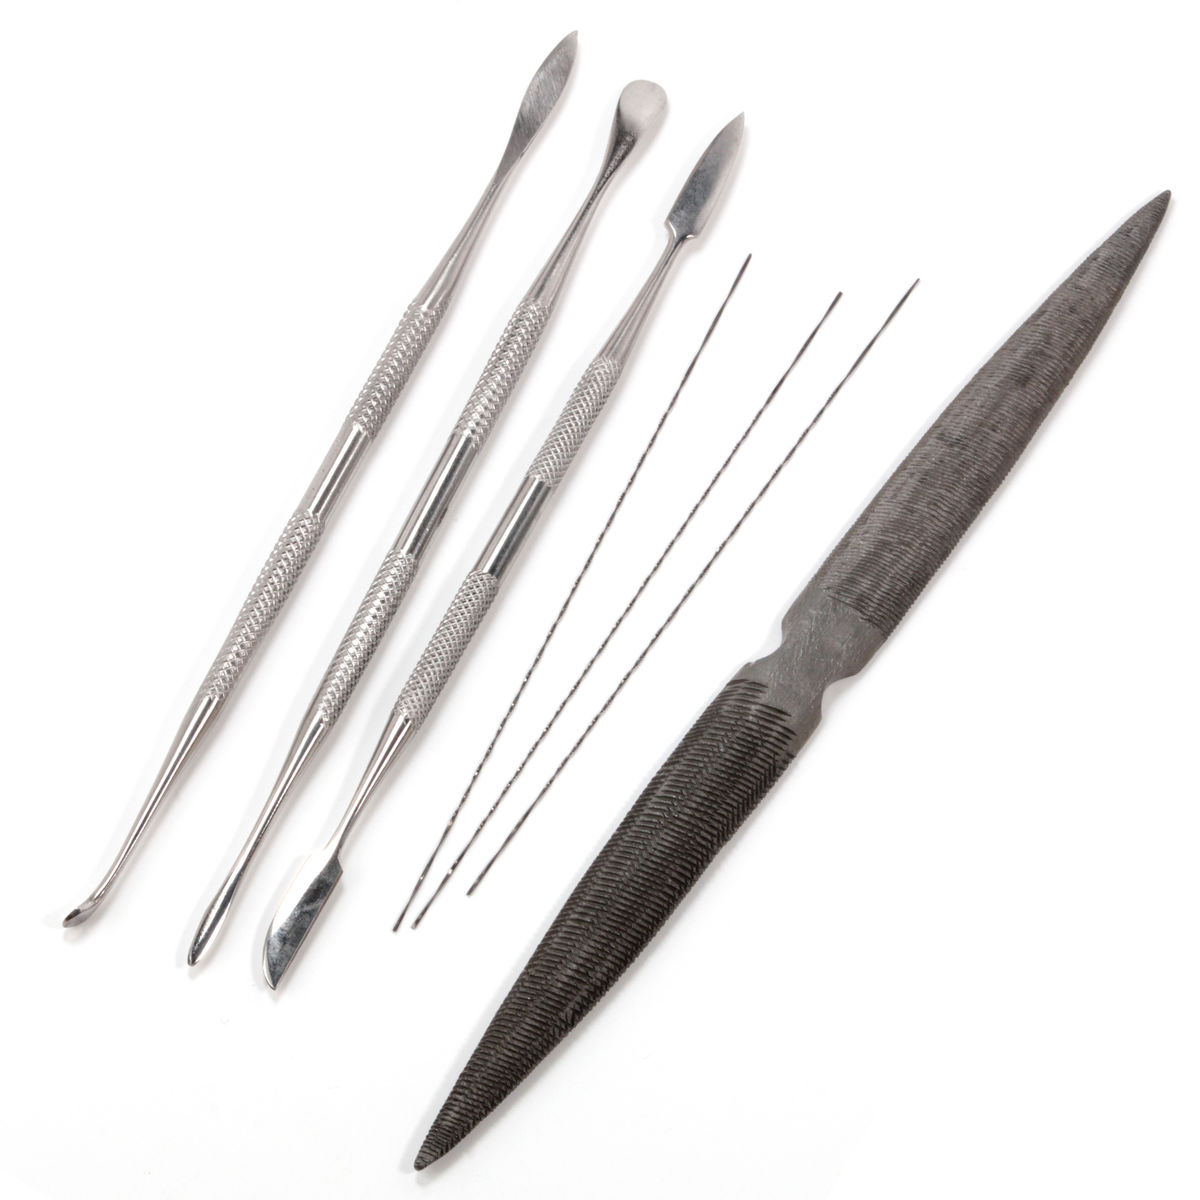 Wax Carving Toolkit - product image